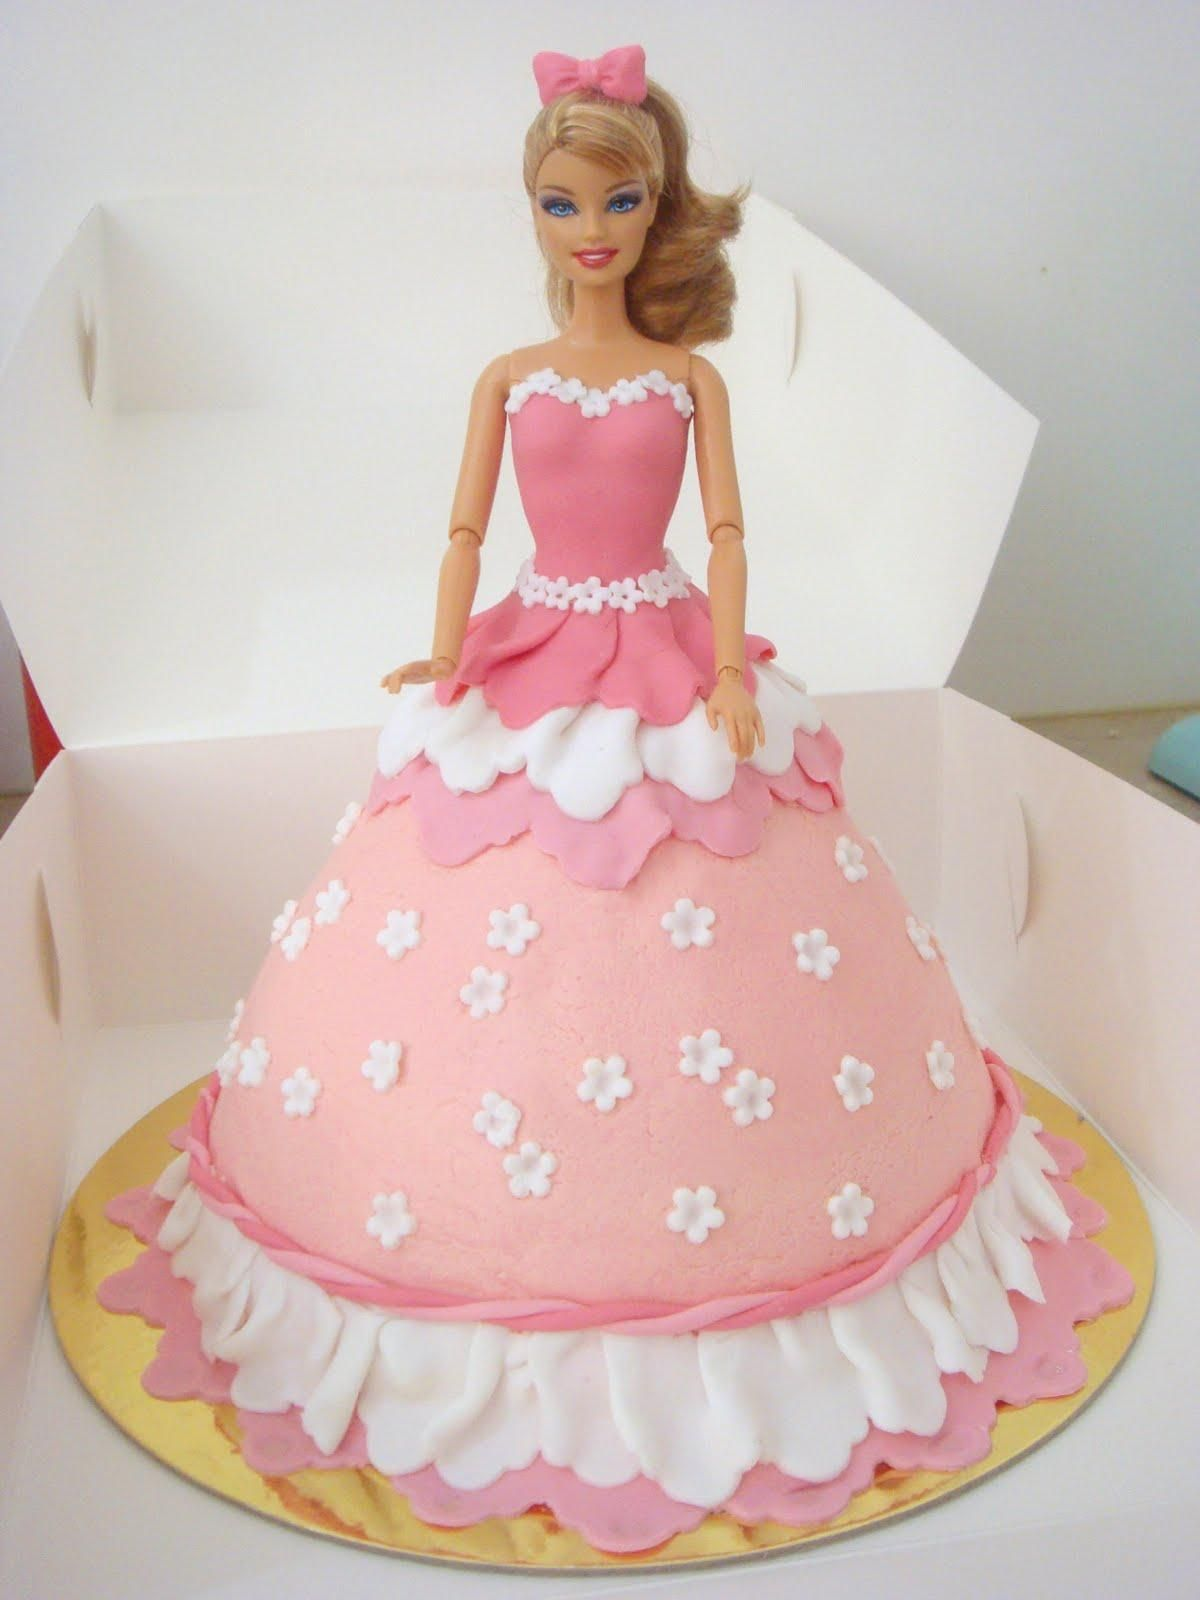 Barbie Doll Cake Birthday Cakes Online Yummycake